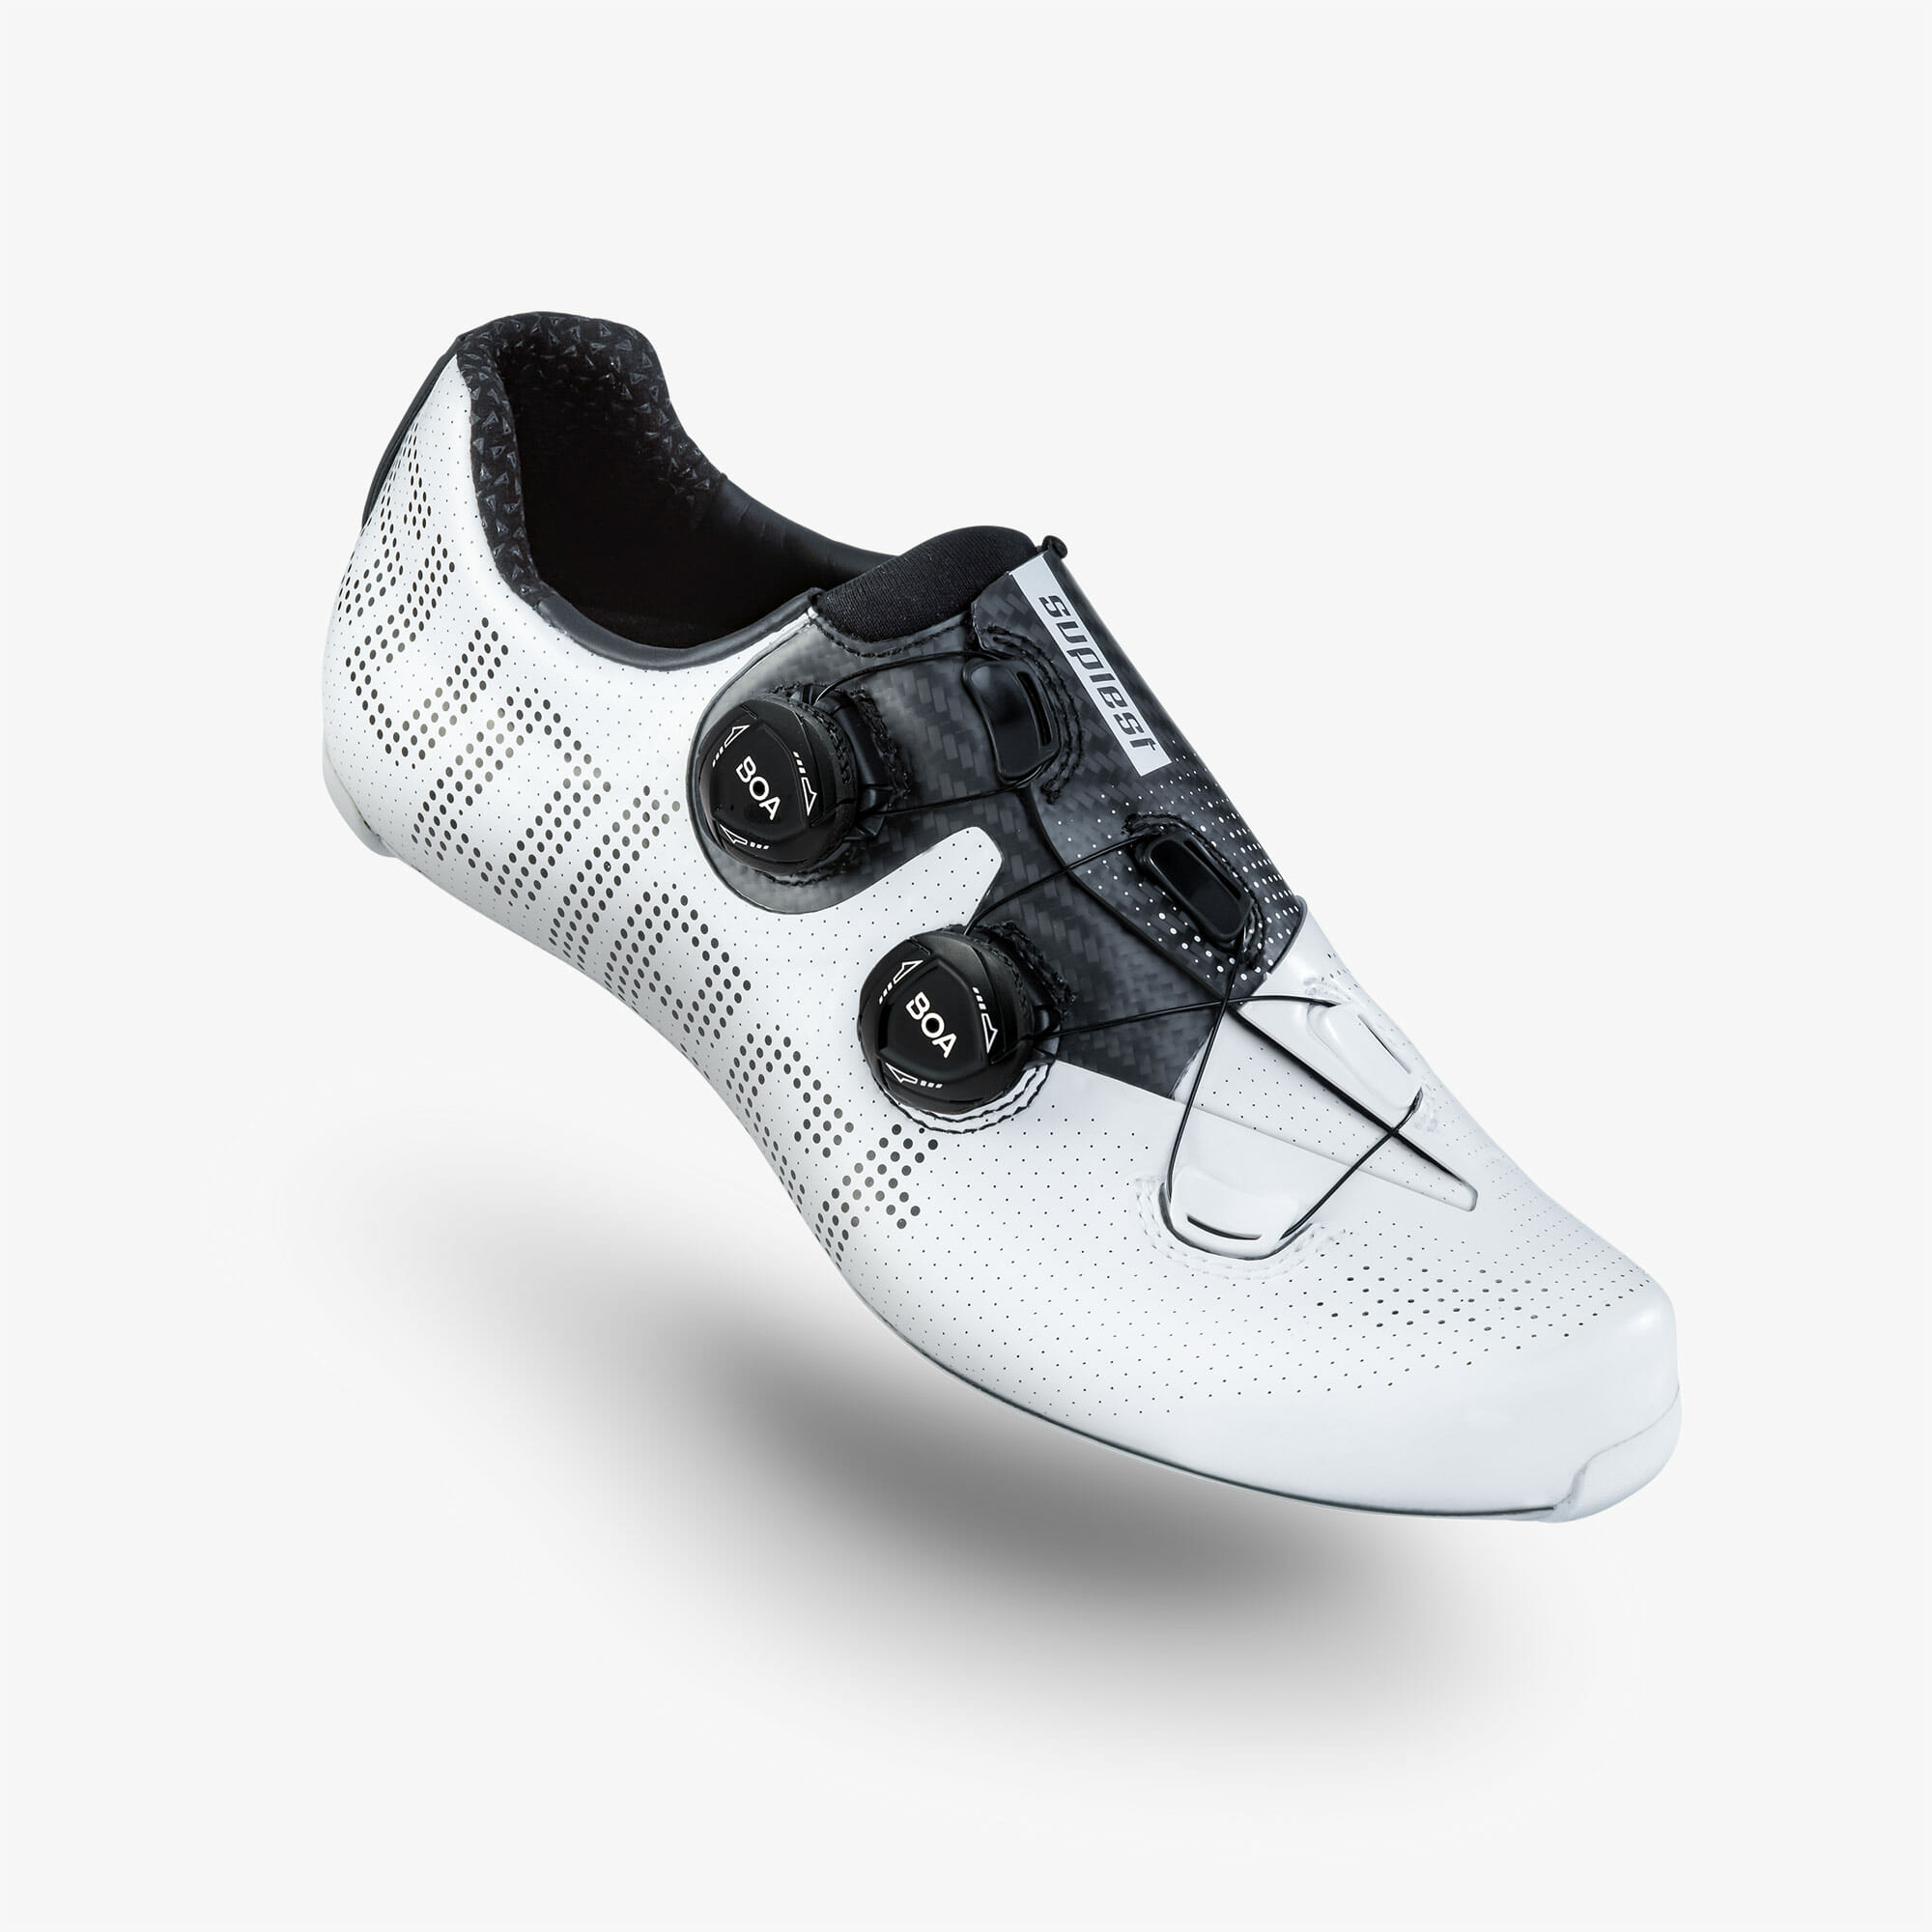 Suplest Road Pro Shoes White Eat Sleep Cycle